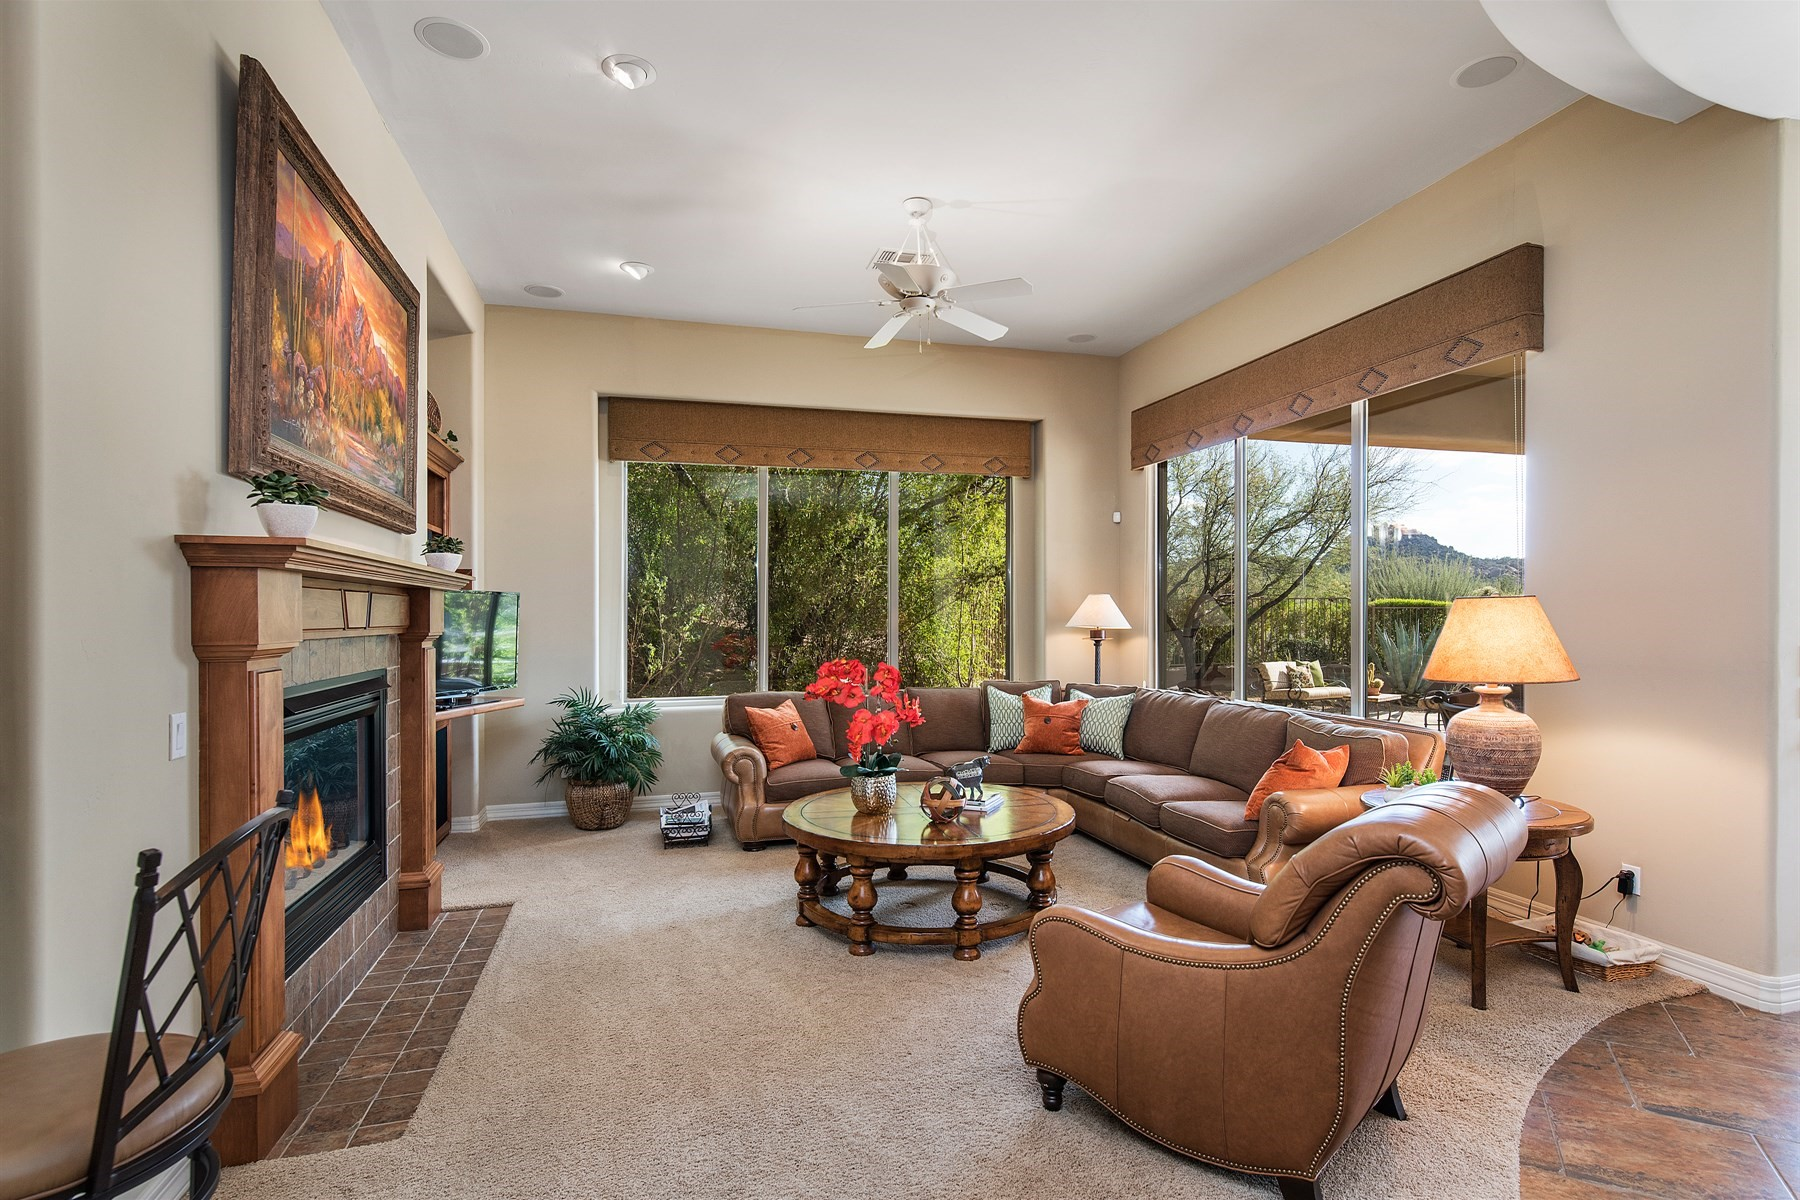 Single Family Home for Sale at Gorgeous Arizona home with Amazing Views of Pinnacle Peak in Troon North 10439 E Monument Drive, Scottsdale, Arizona, 85262 United States